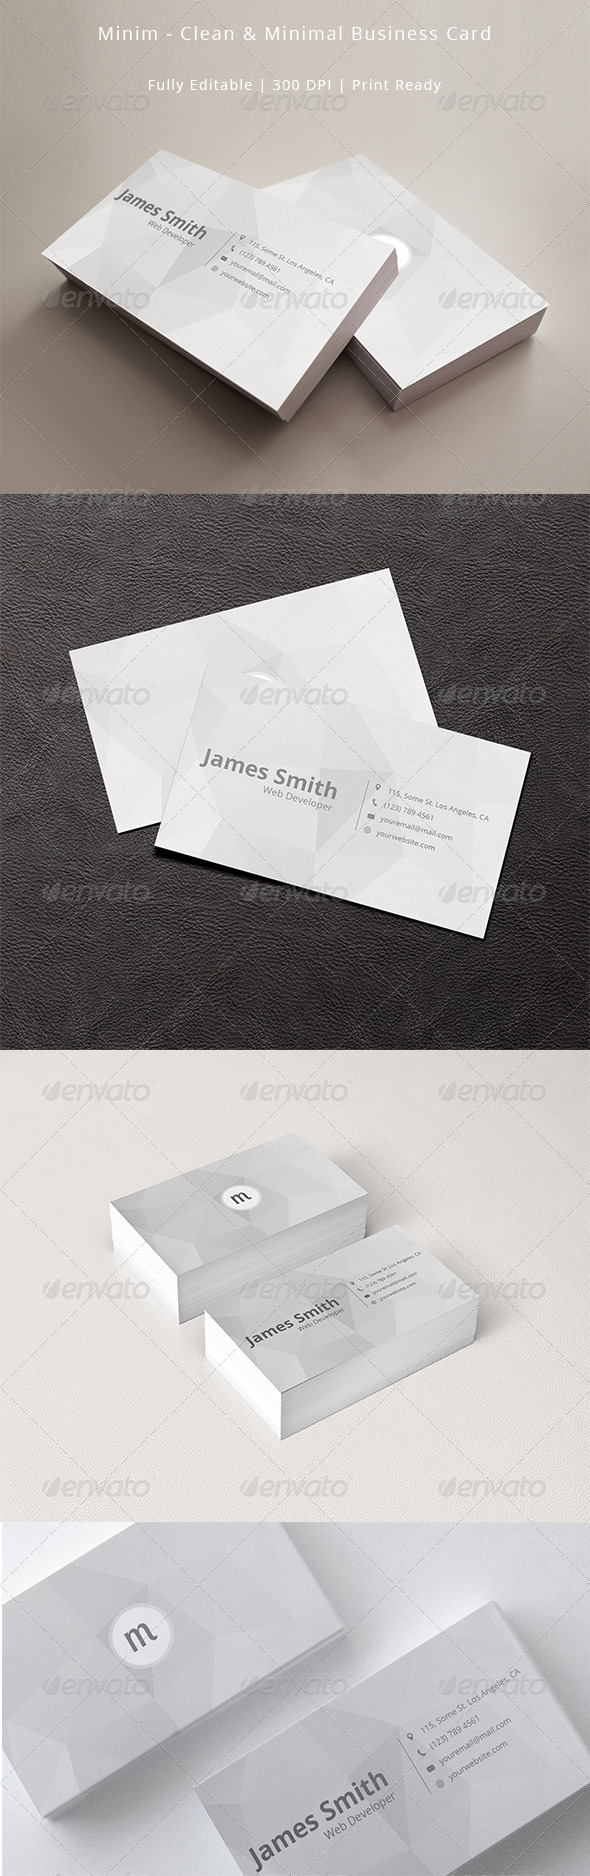 GraphicRiver Minim Clean and Minimal Business Card Template 7530416